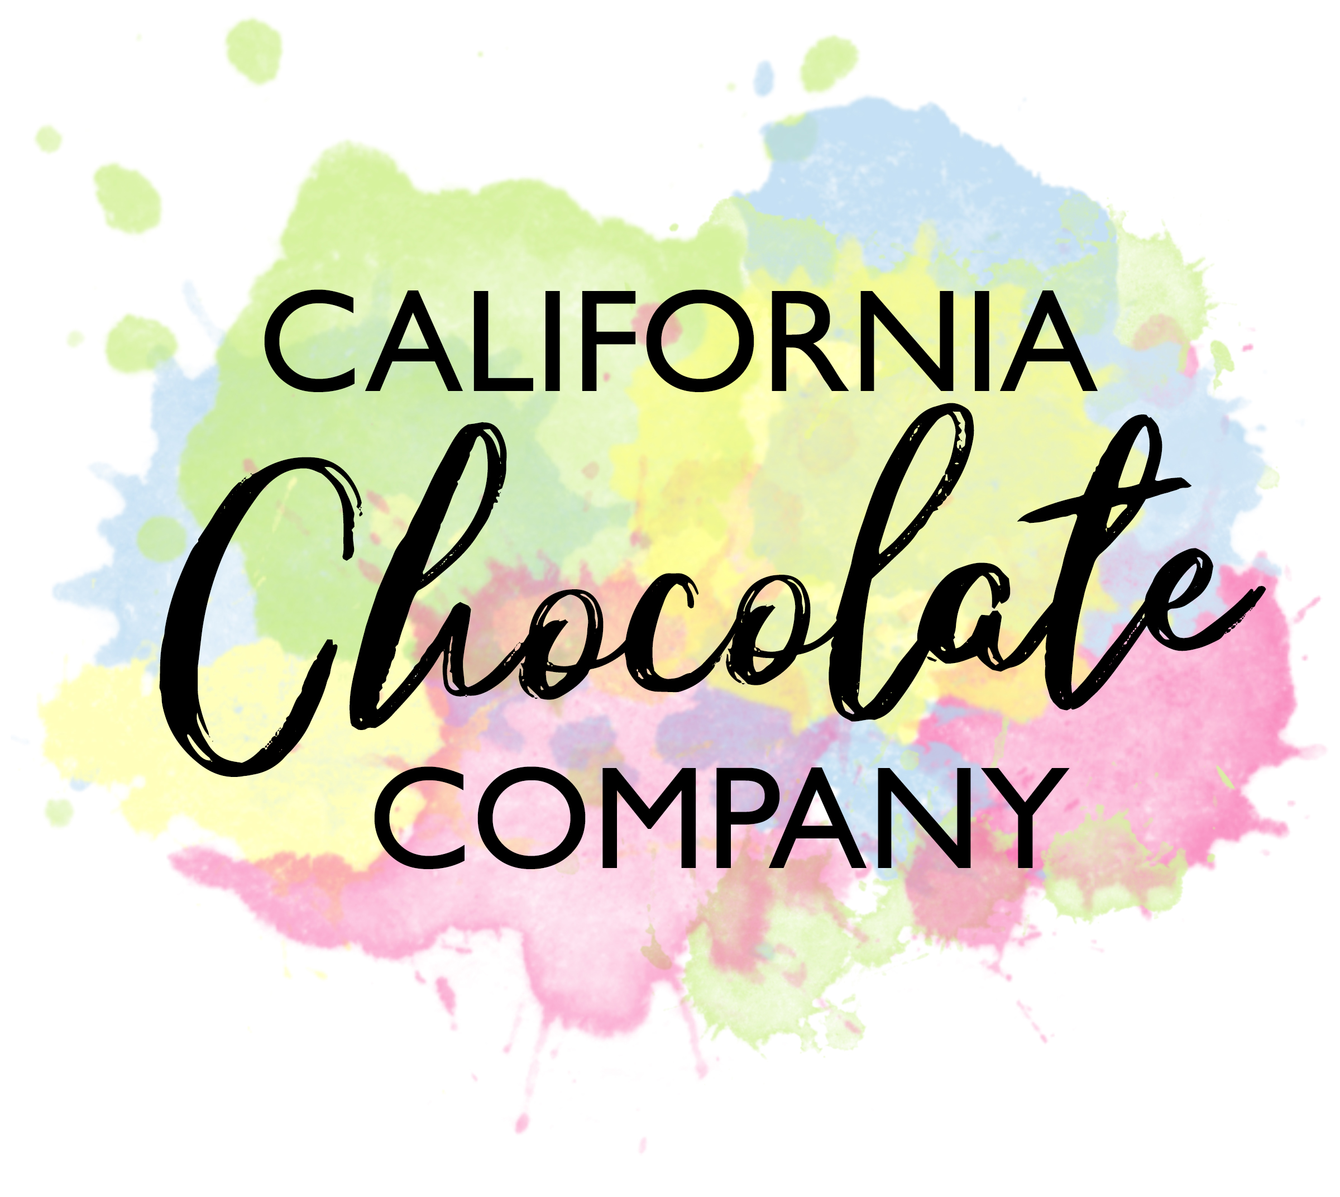 CA Chocolate Company